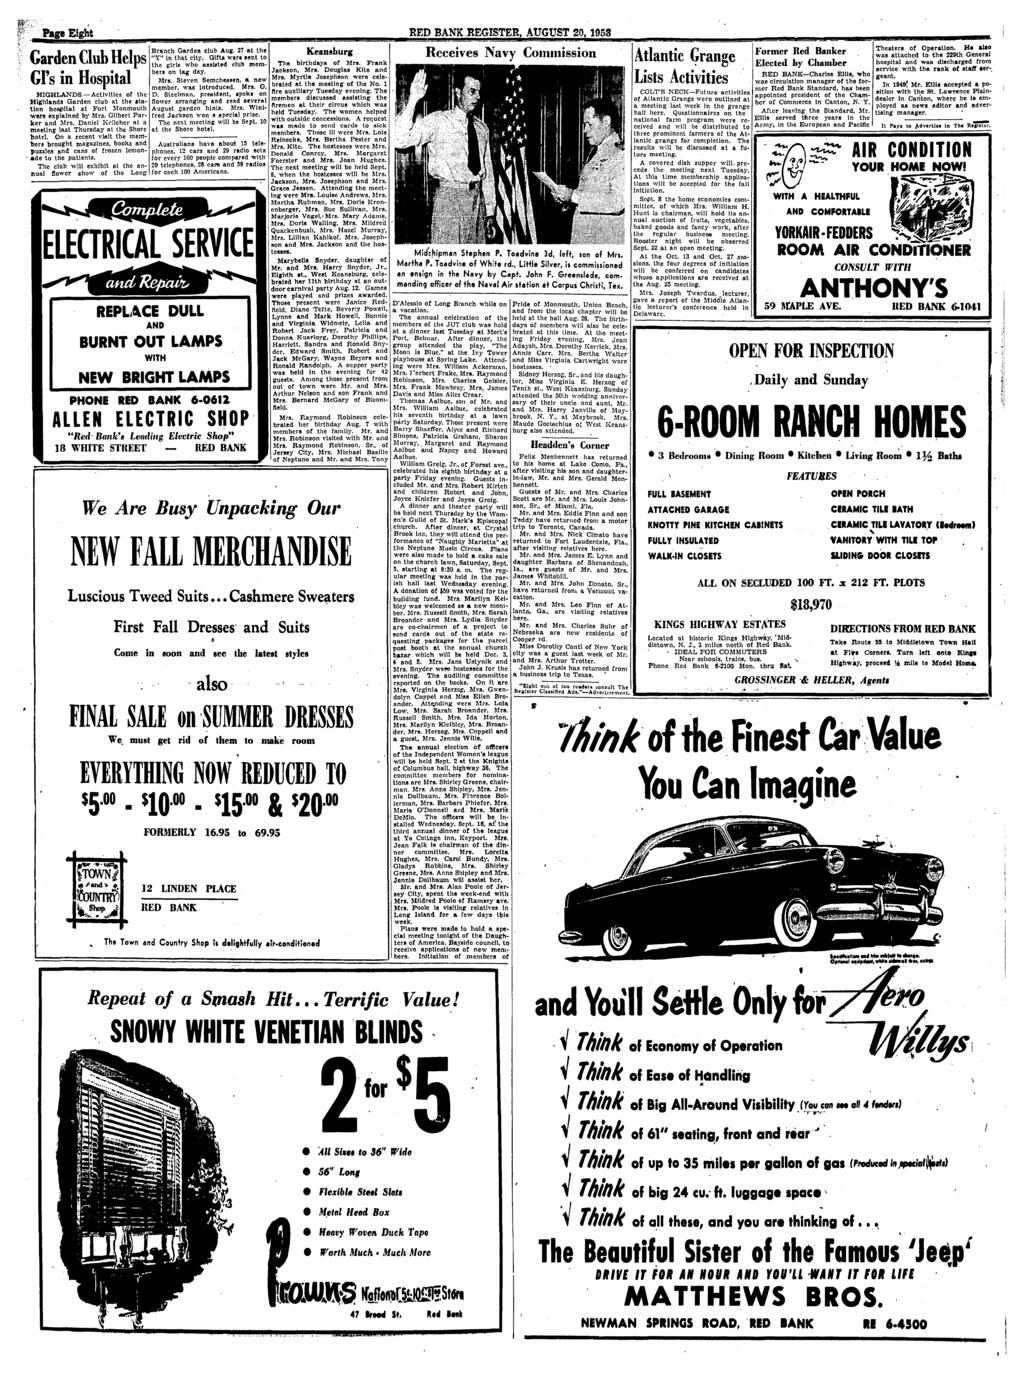 Red Bank Register For All Departments Call Pdf Glove Compartment Wiring Diagram 1953 Studebaker Champion And Commander Para Eieht August 20 Garden Club Helps Gis In Hospital